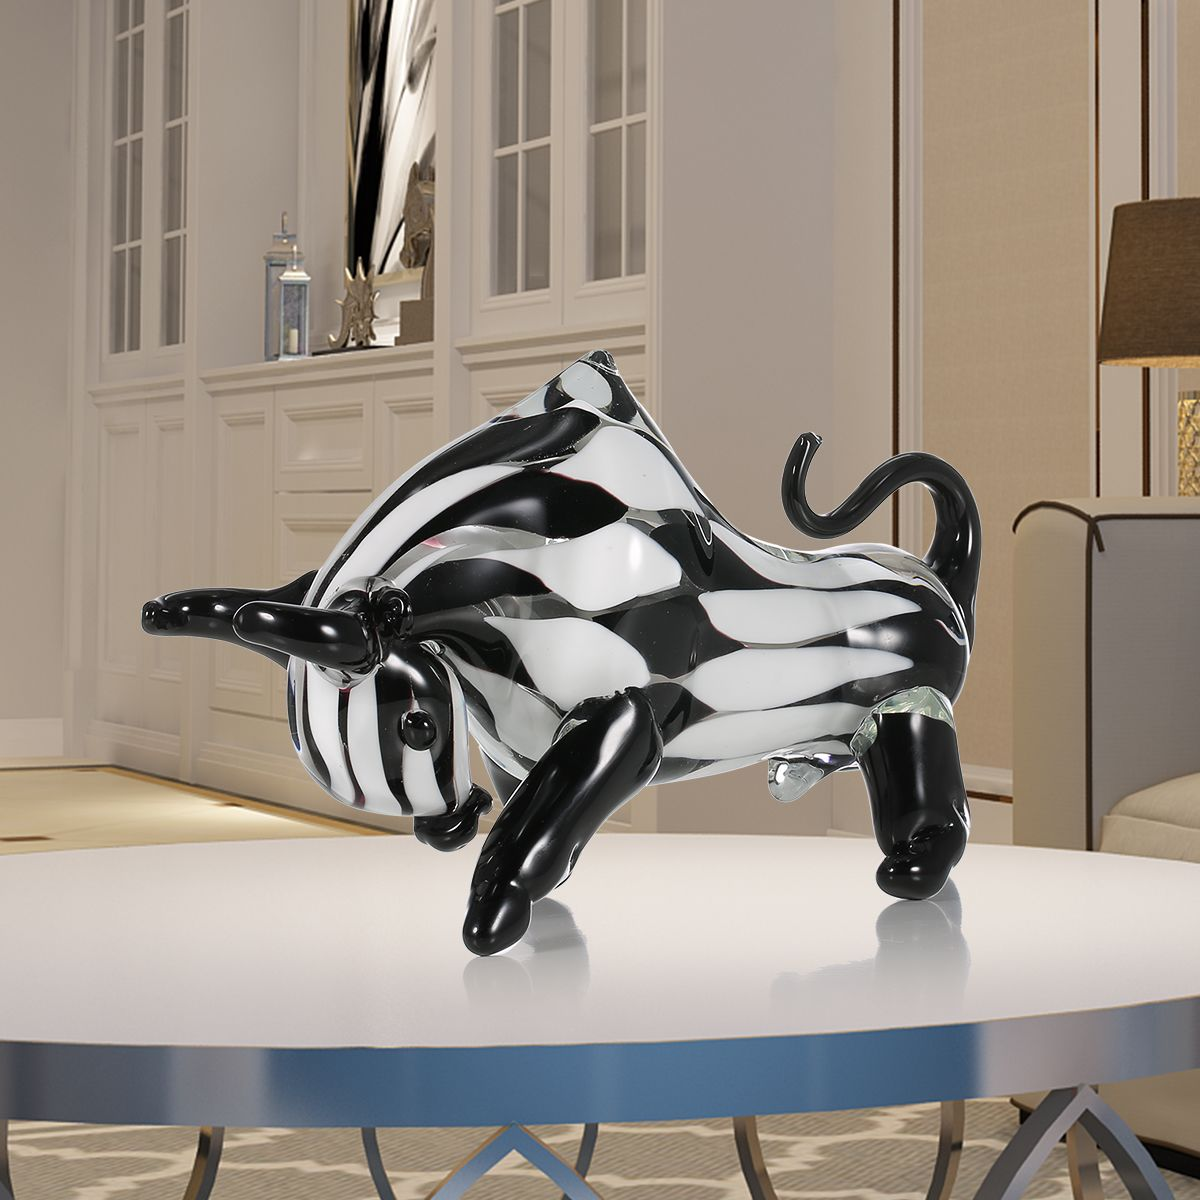 Tooarts Blacku0026White Cattle Glass Sculpture Home Decor Animal Ornament Gift  Craft Decoration